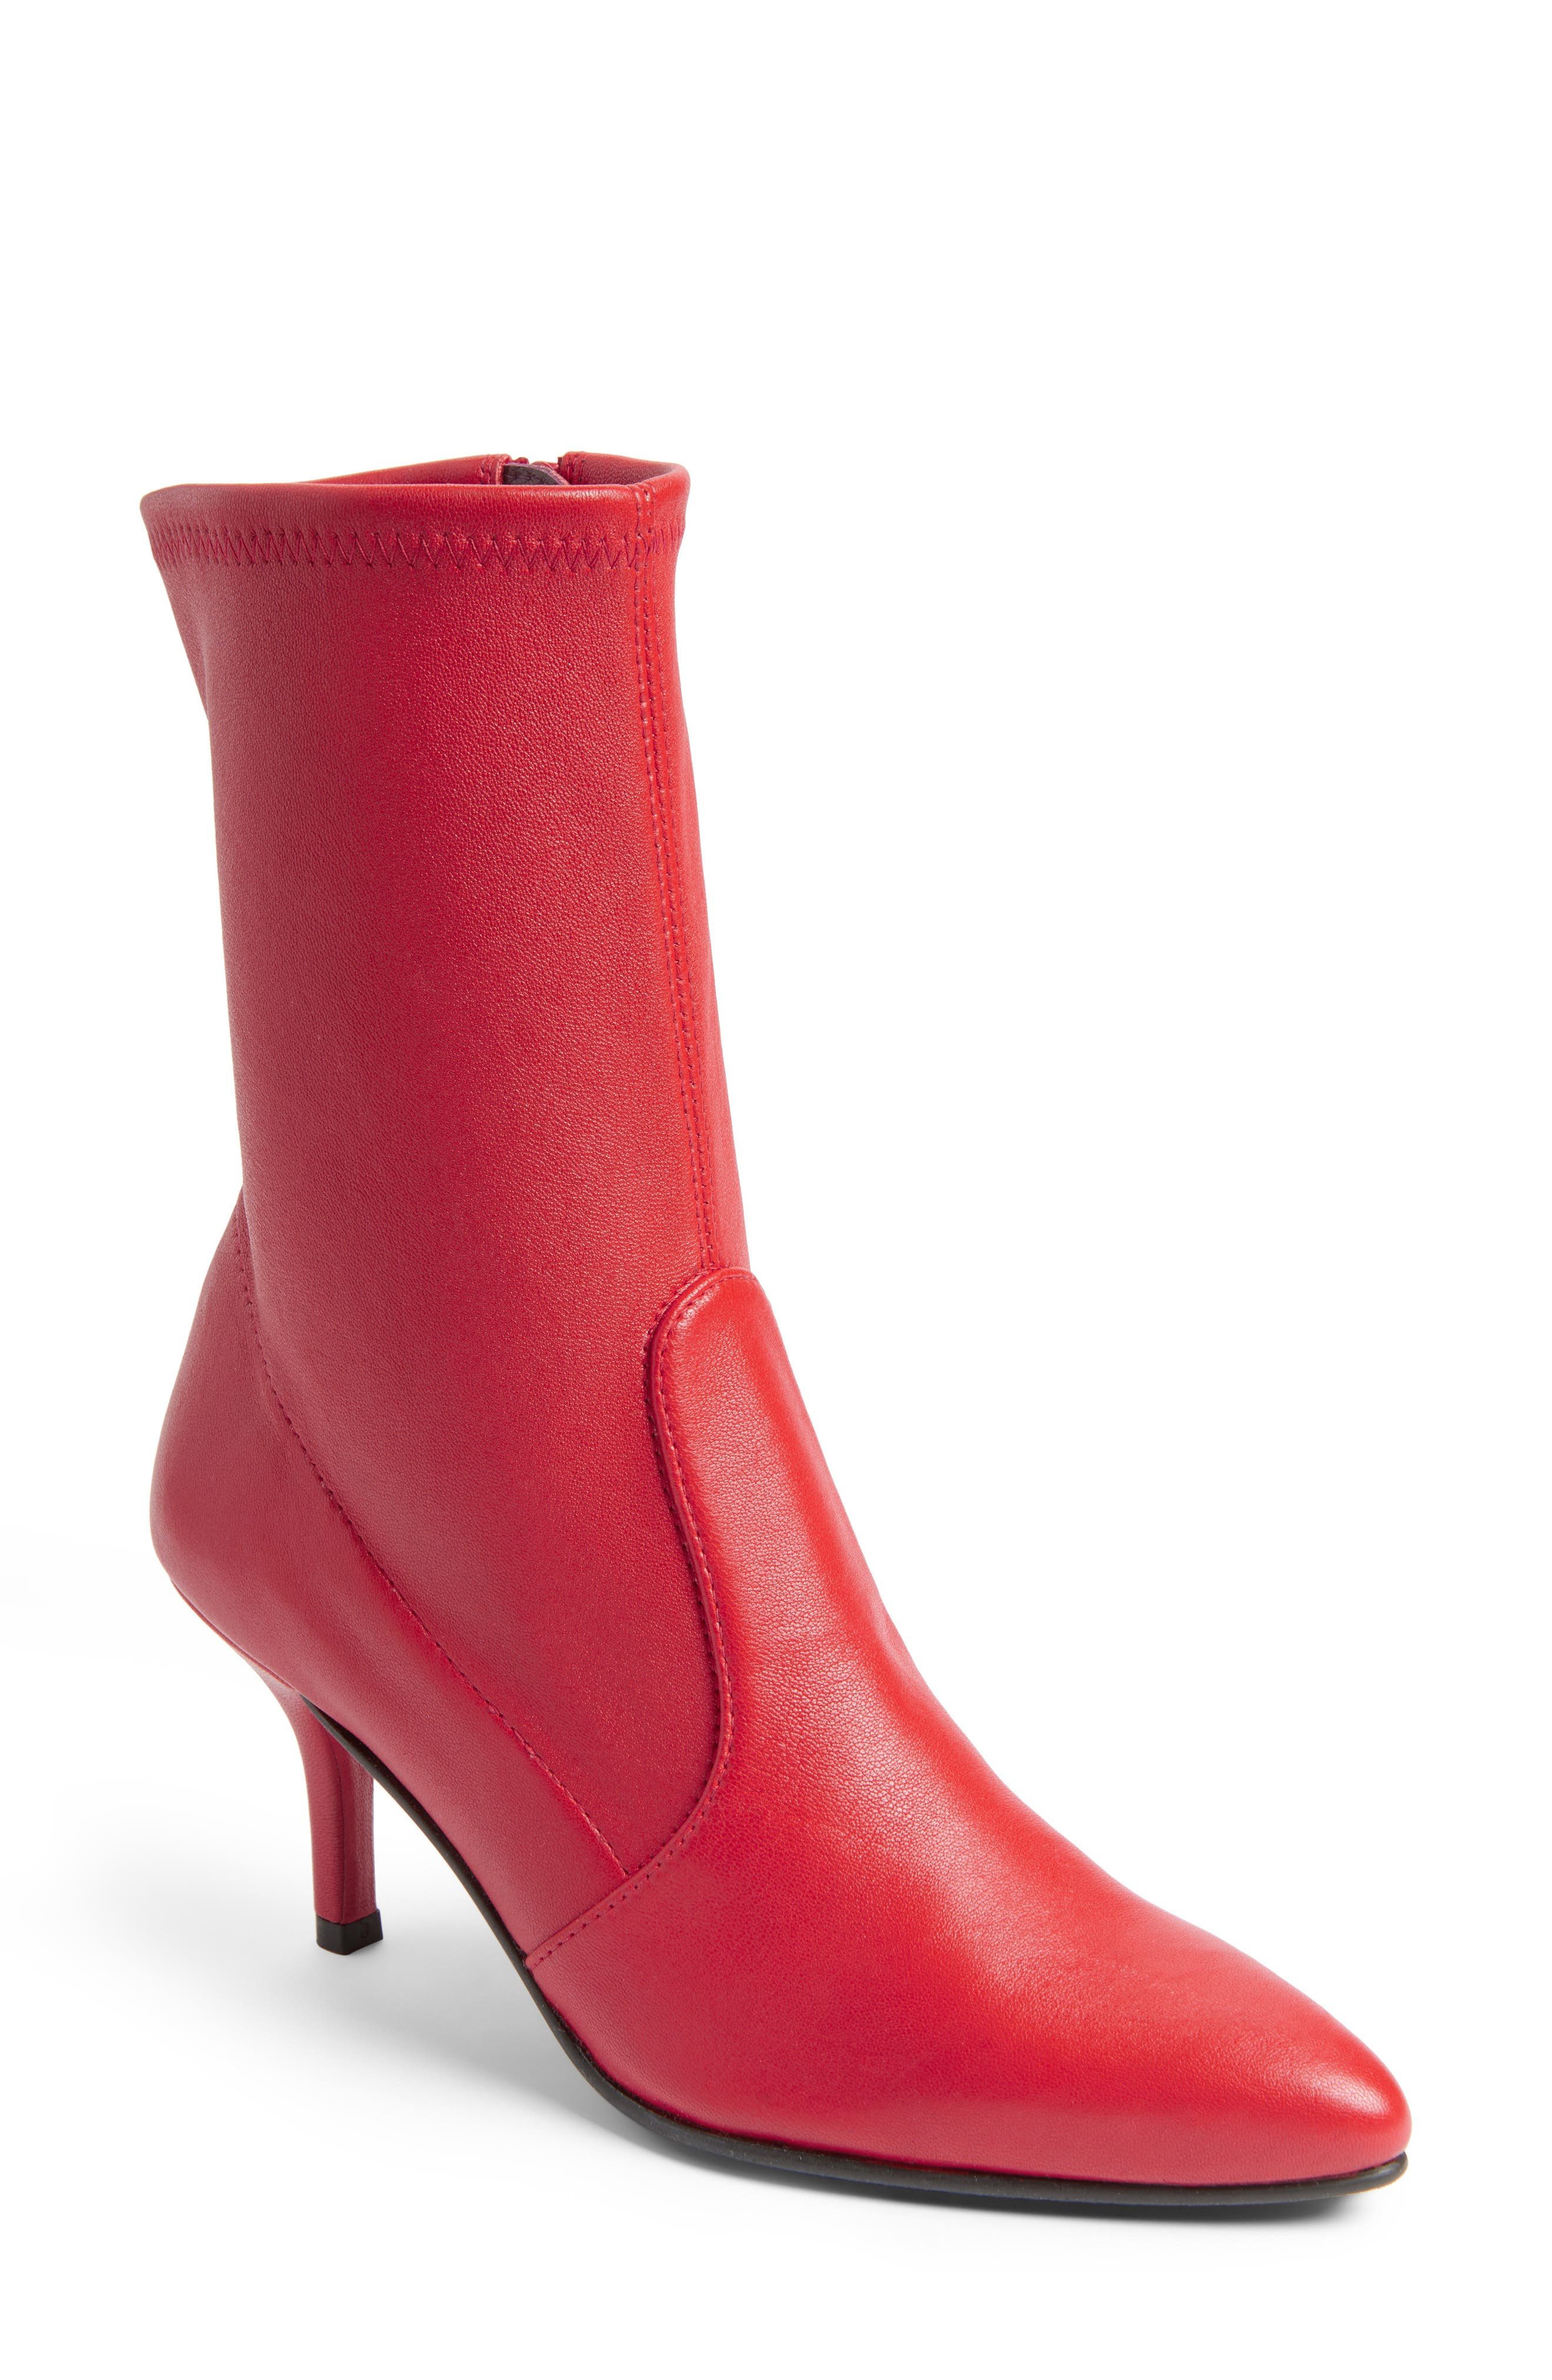 Cling Stretch Bootie,                         Main,                         color, Red Plonge Stretch